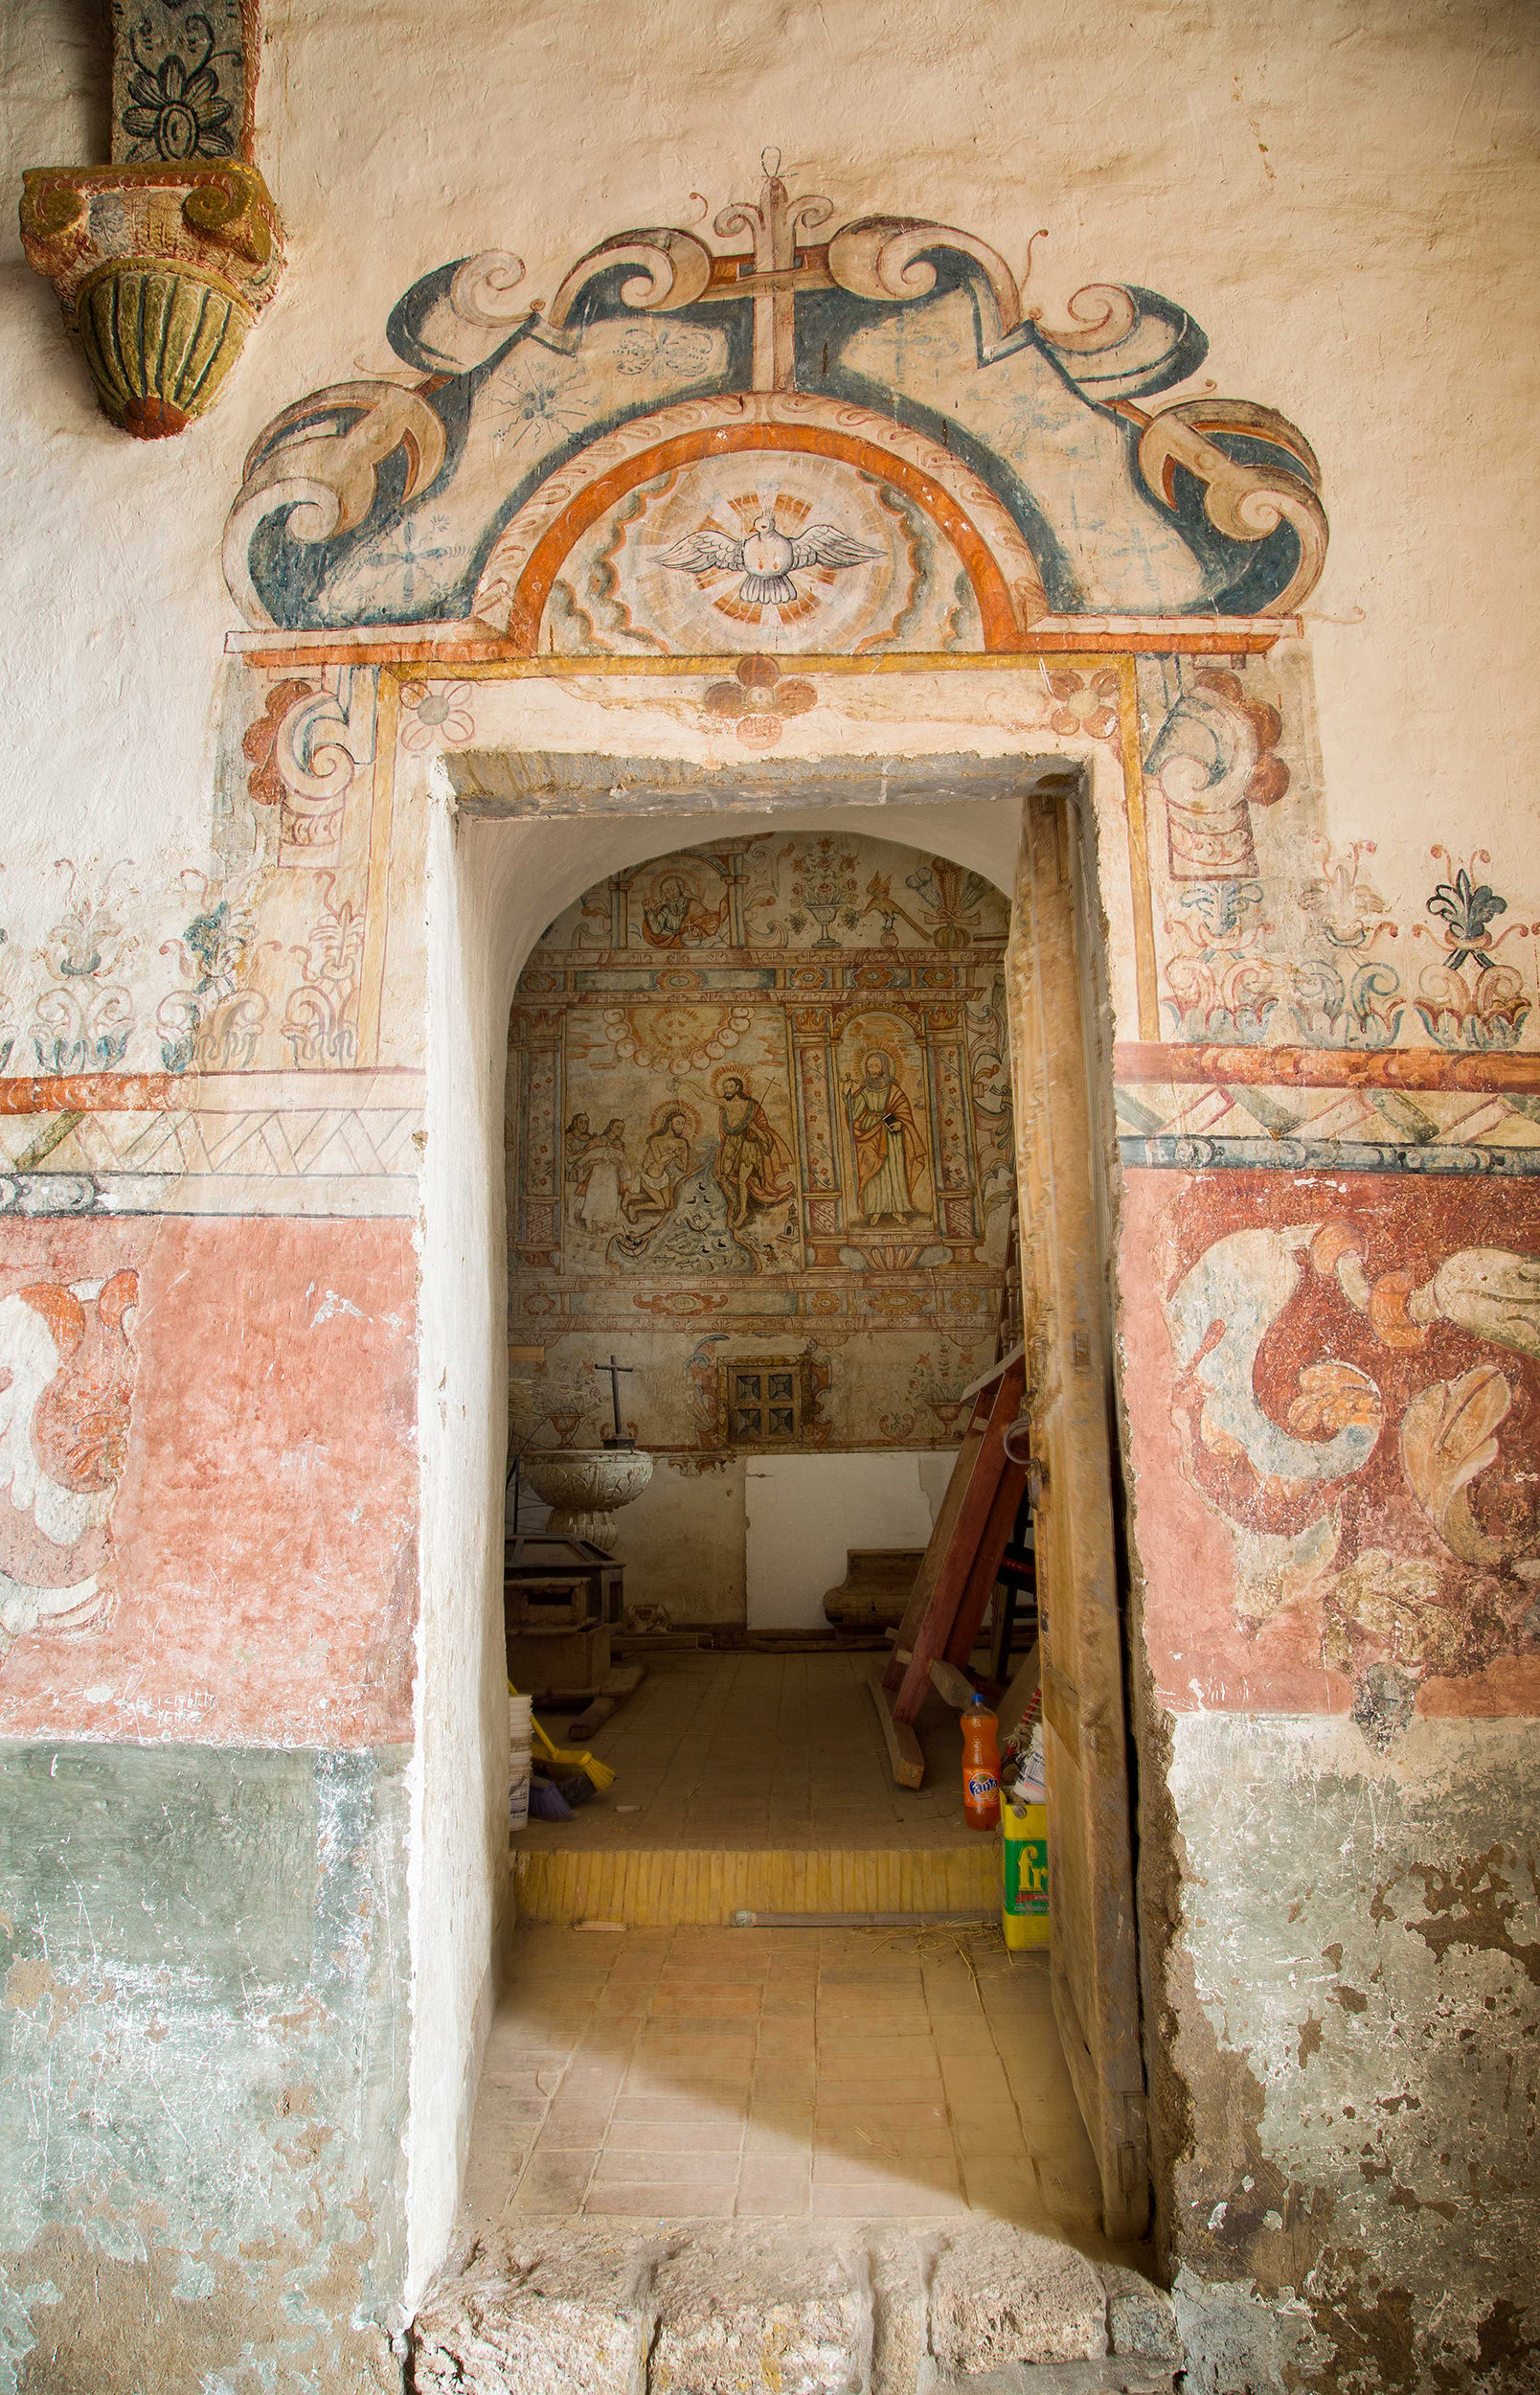 Fig. 44 Doorway leading to Baptistery, Church of Pitumarca, Canchis Province, late 18th century. Photo by Raúl Montero Quispe.